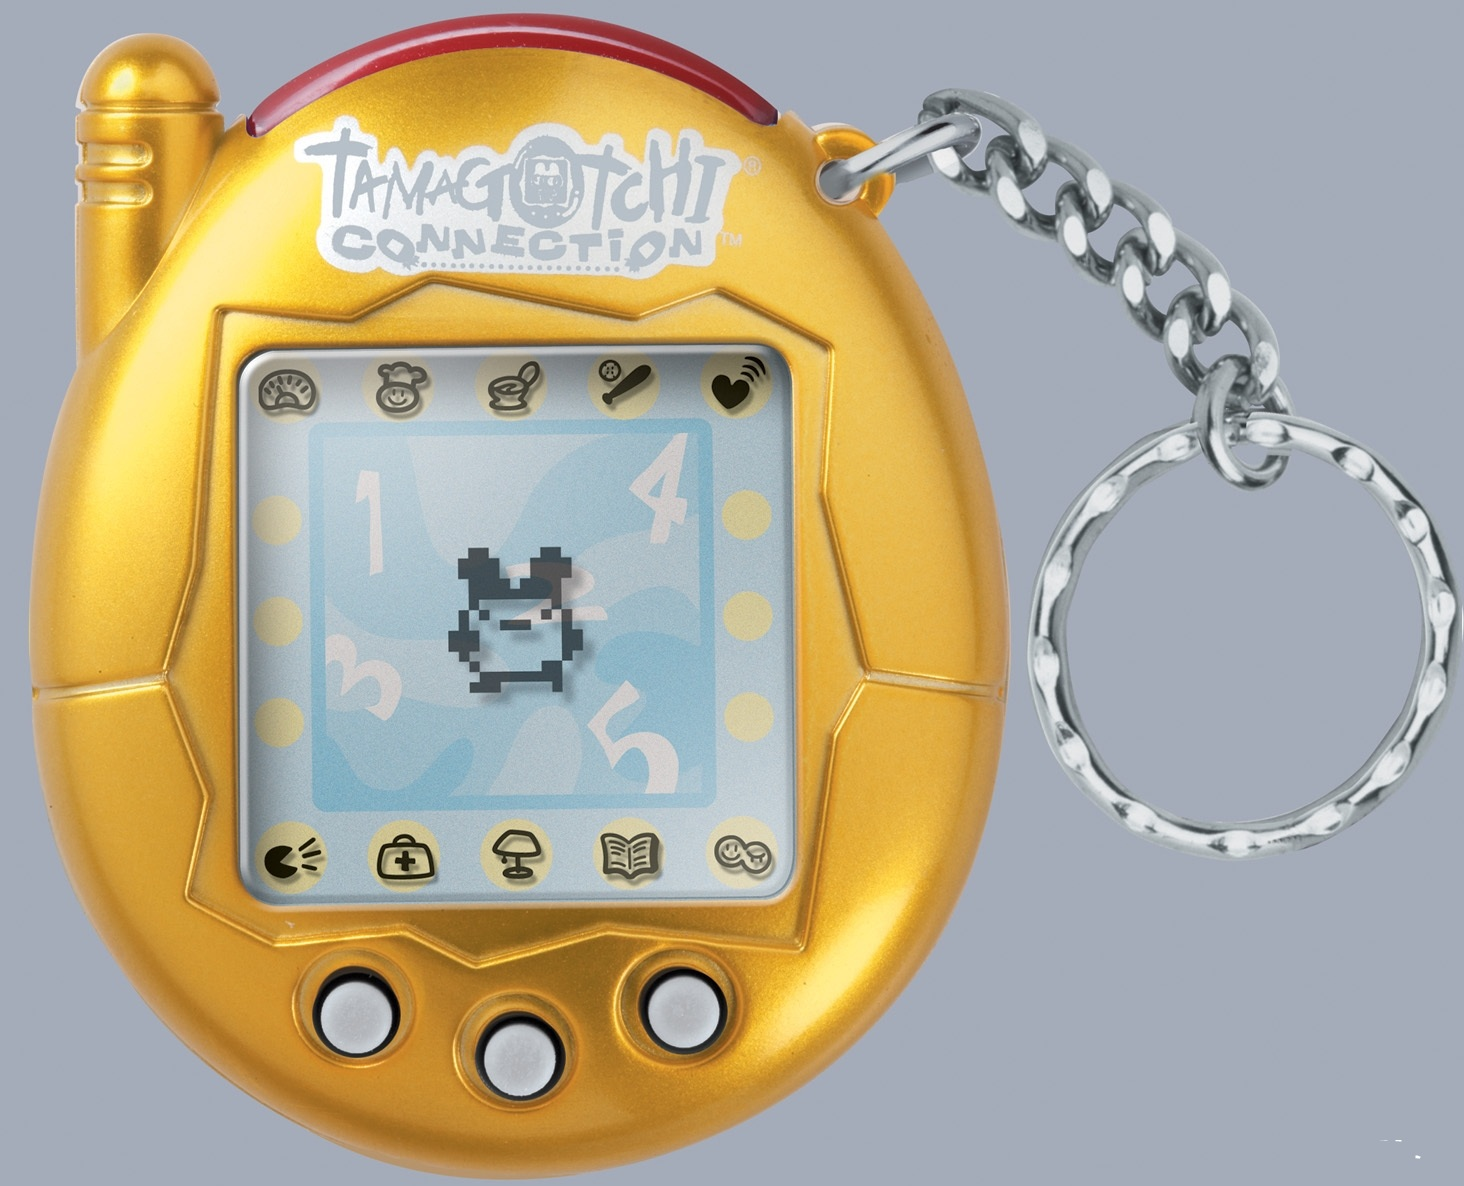 Tamagotchi Digital Pet Gets Resurrected for Android to ...